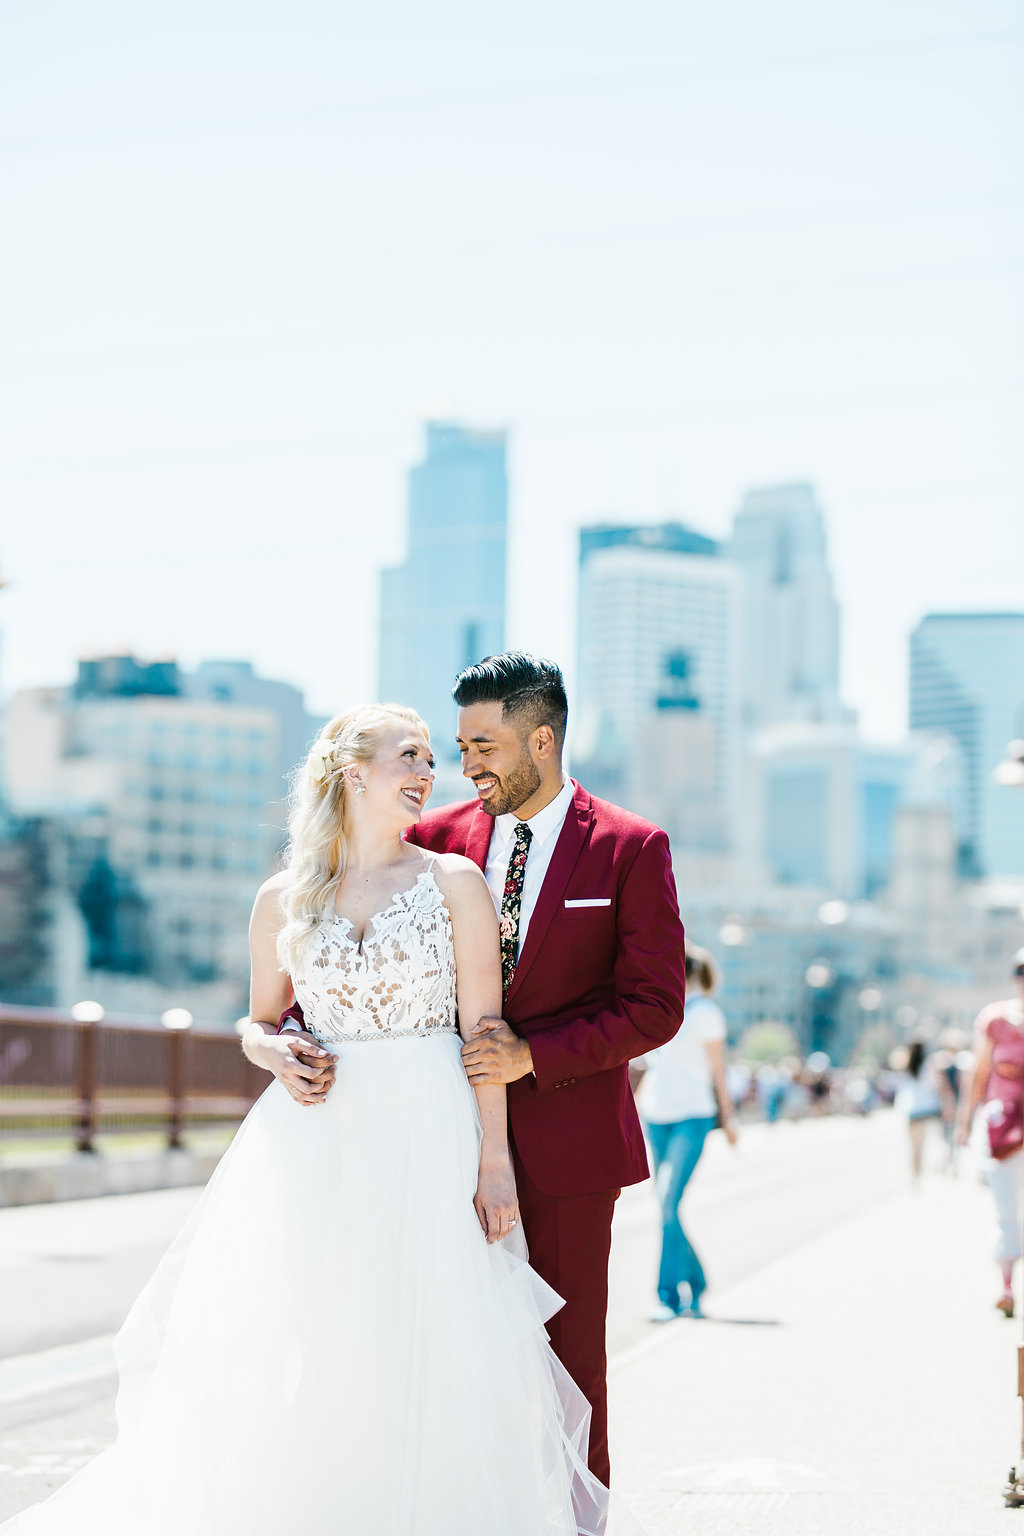 Marvin + Eloise | Hayley Paige dress and groom in red suit with floral tie | groom with a beard | Minneapolis skyscape | white pocket square | Aaron T Photo | Sixpence Events